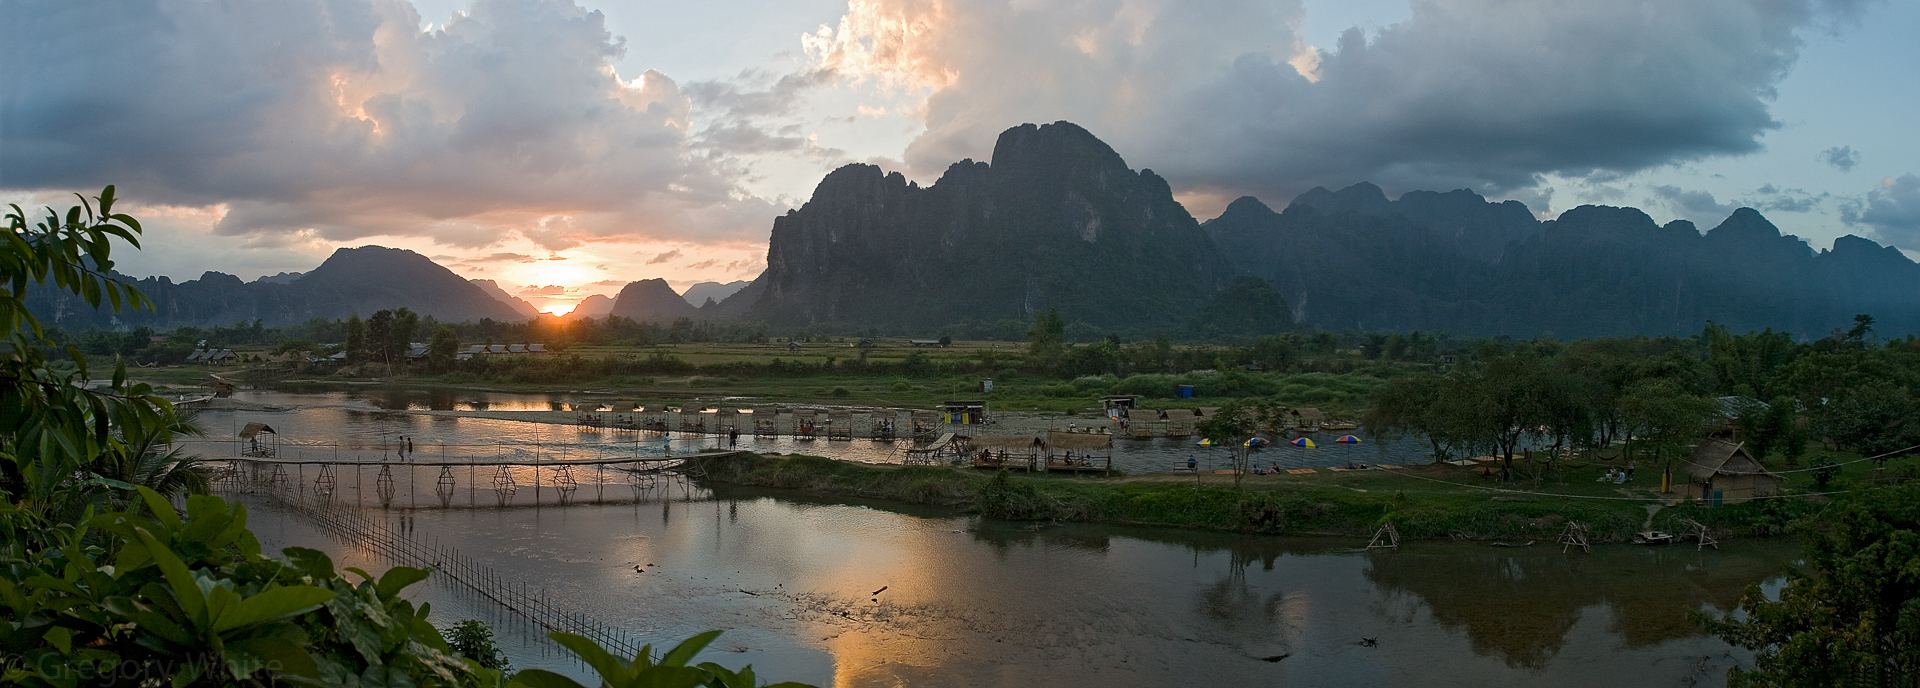 Sunset in Vang Vien, Laos.